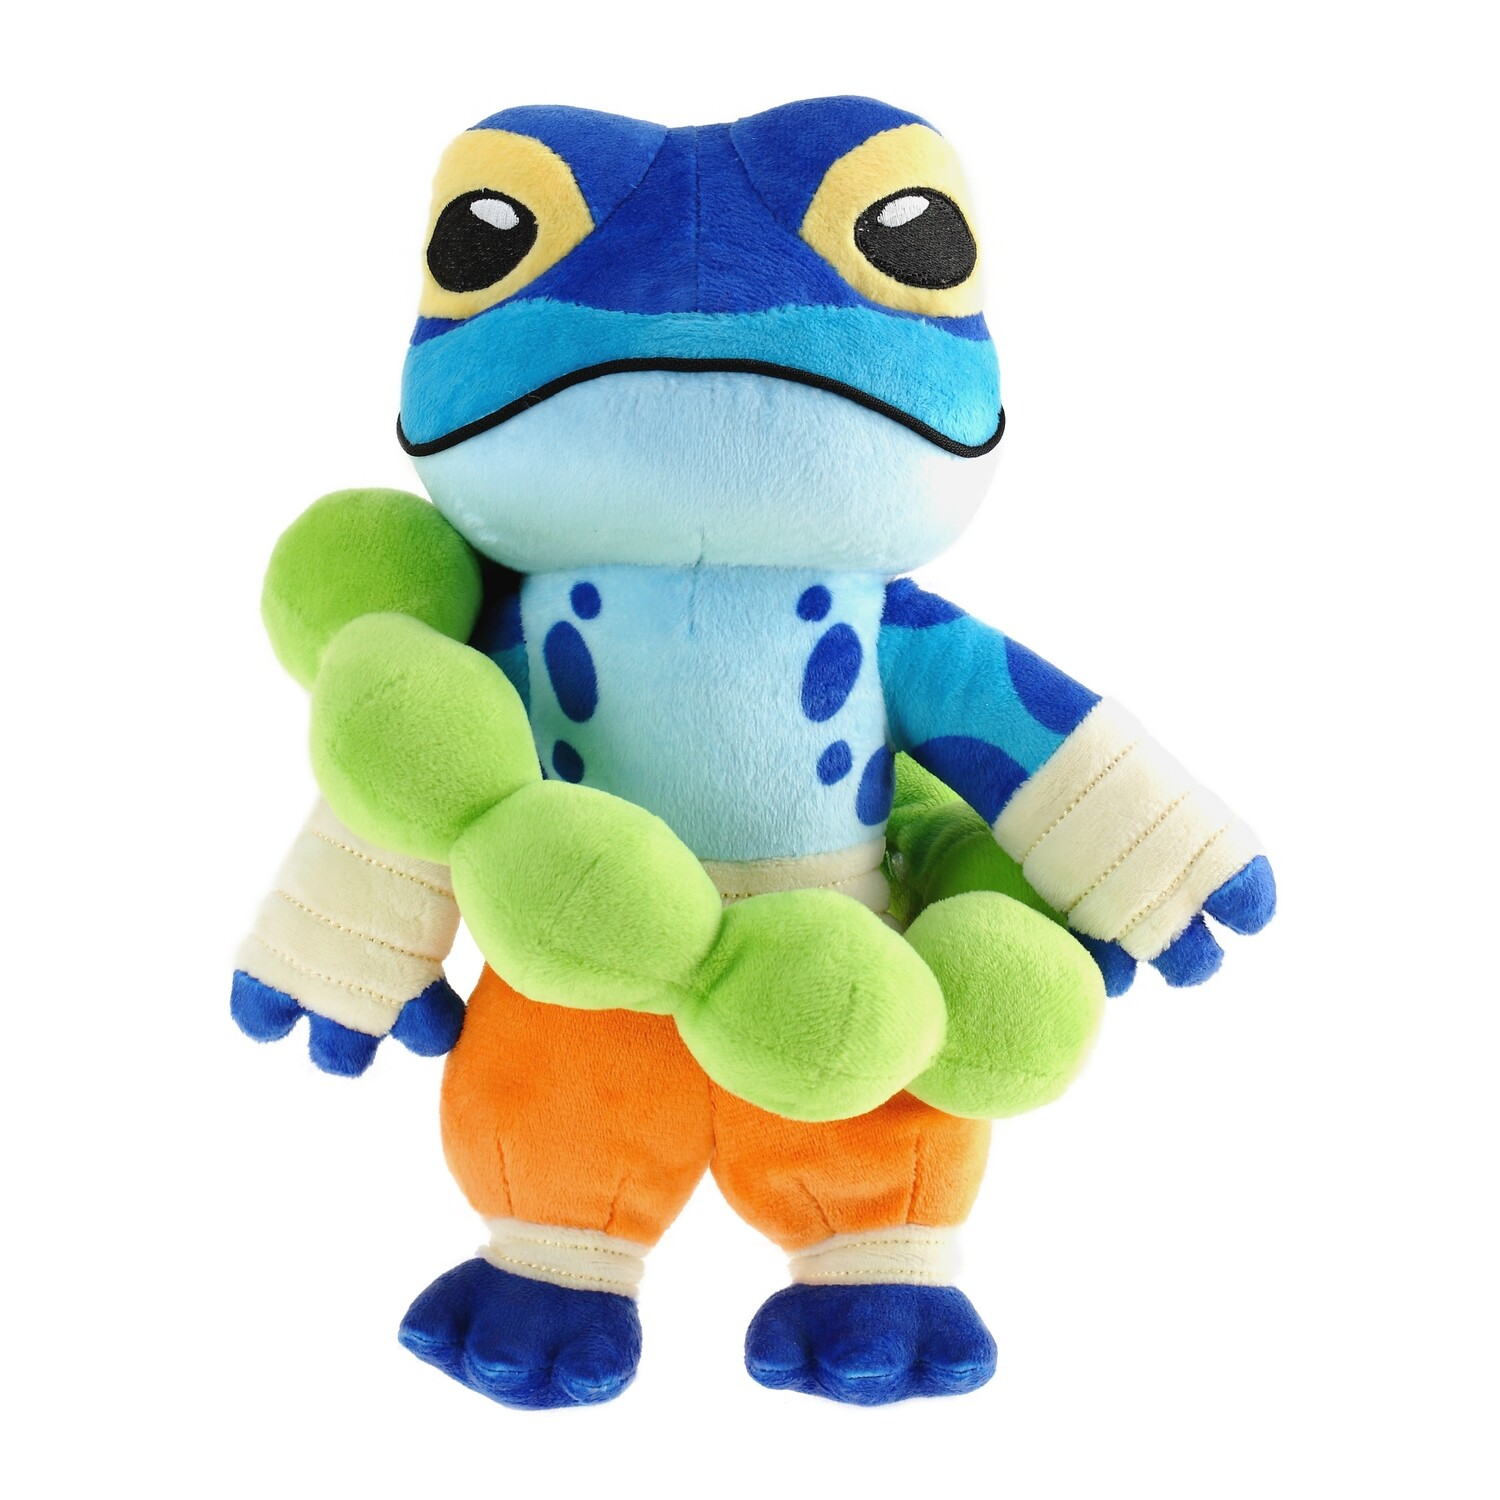 Rivals of Aether: Ranno Plush and Pin with Golden Skin Code